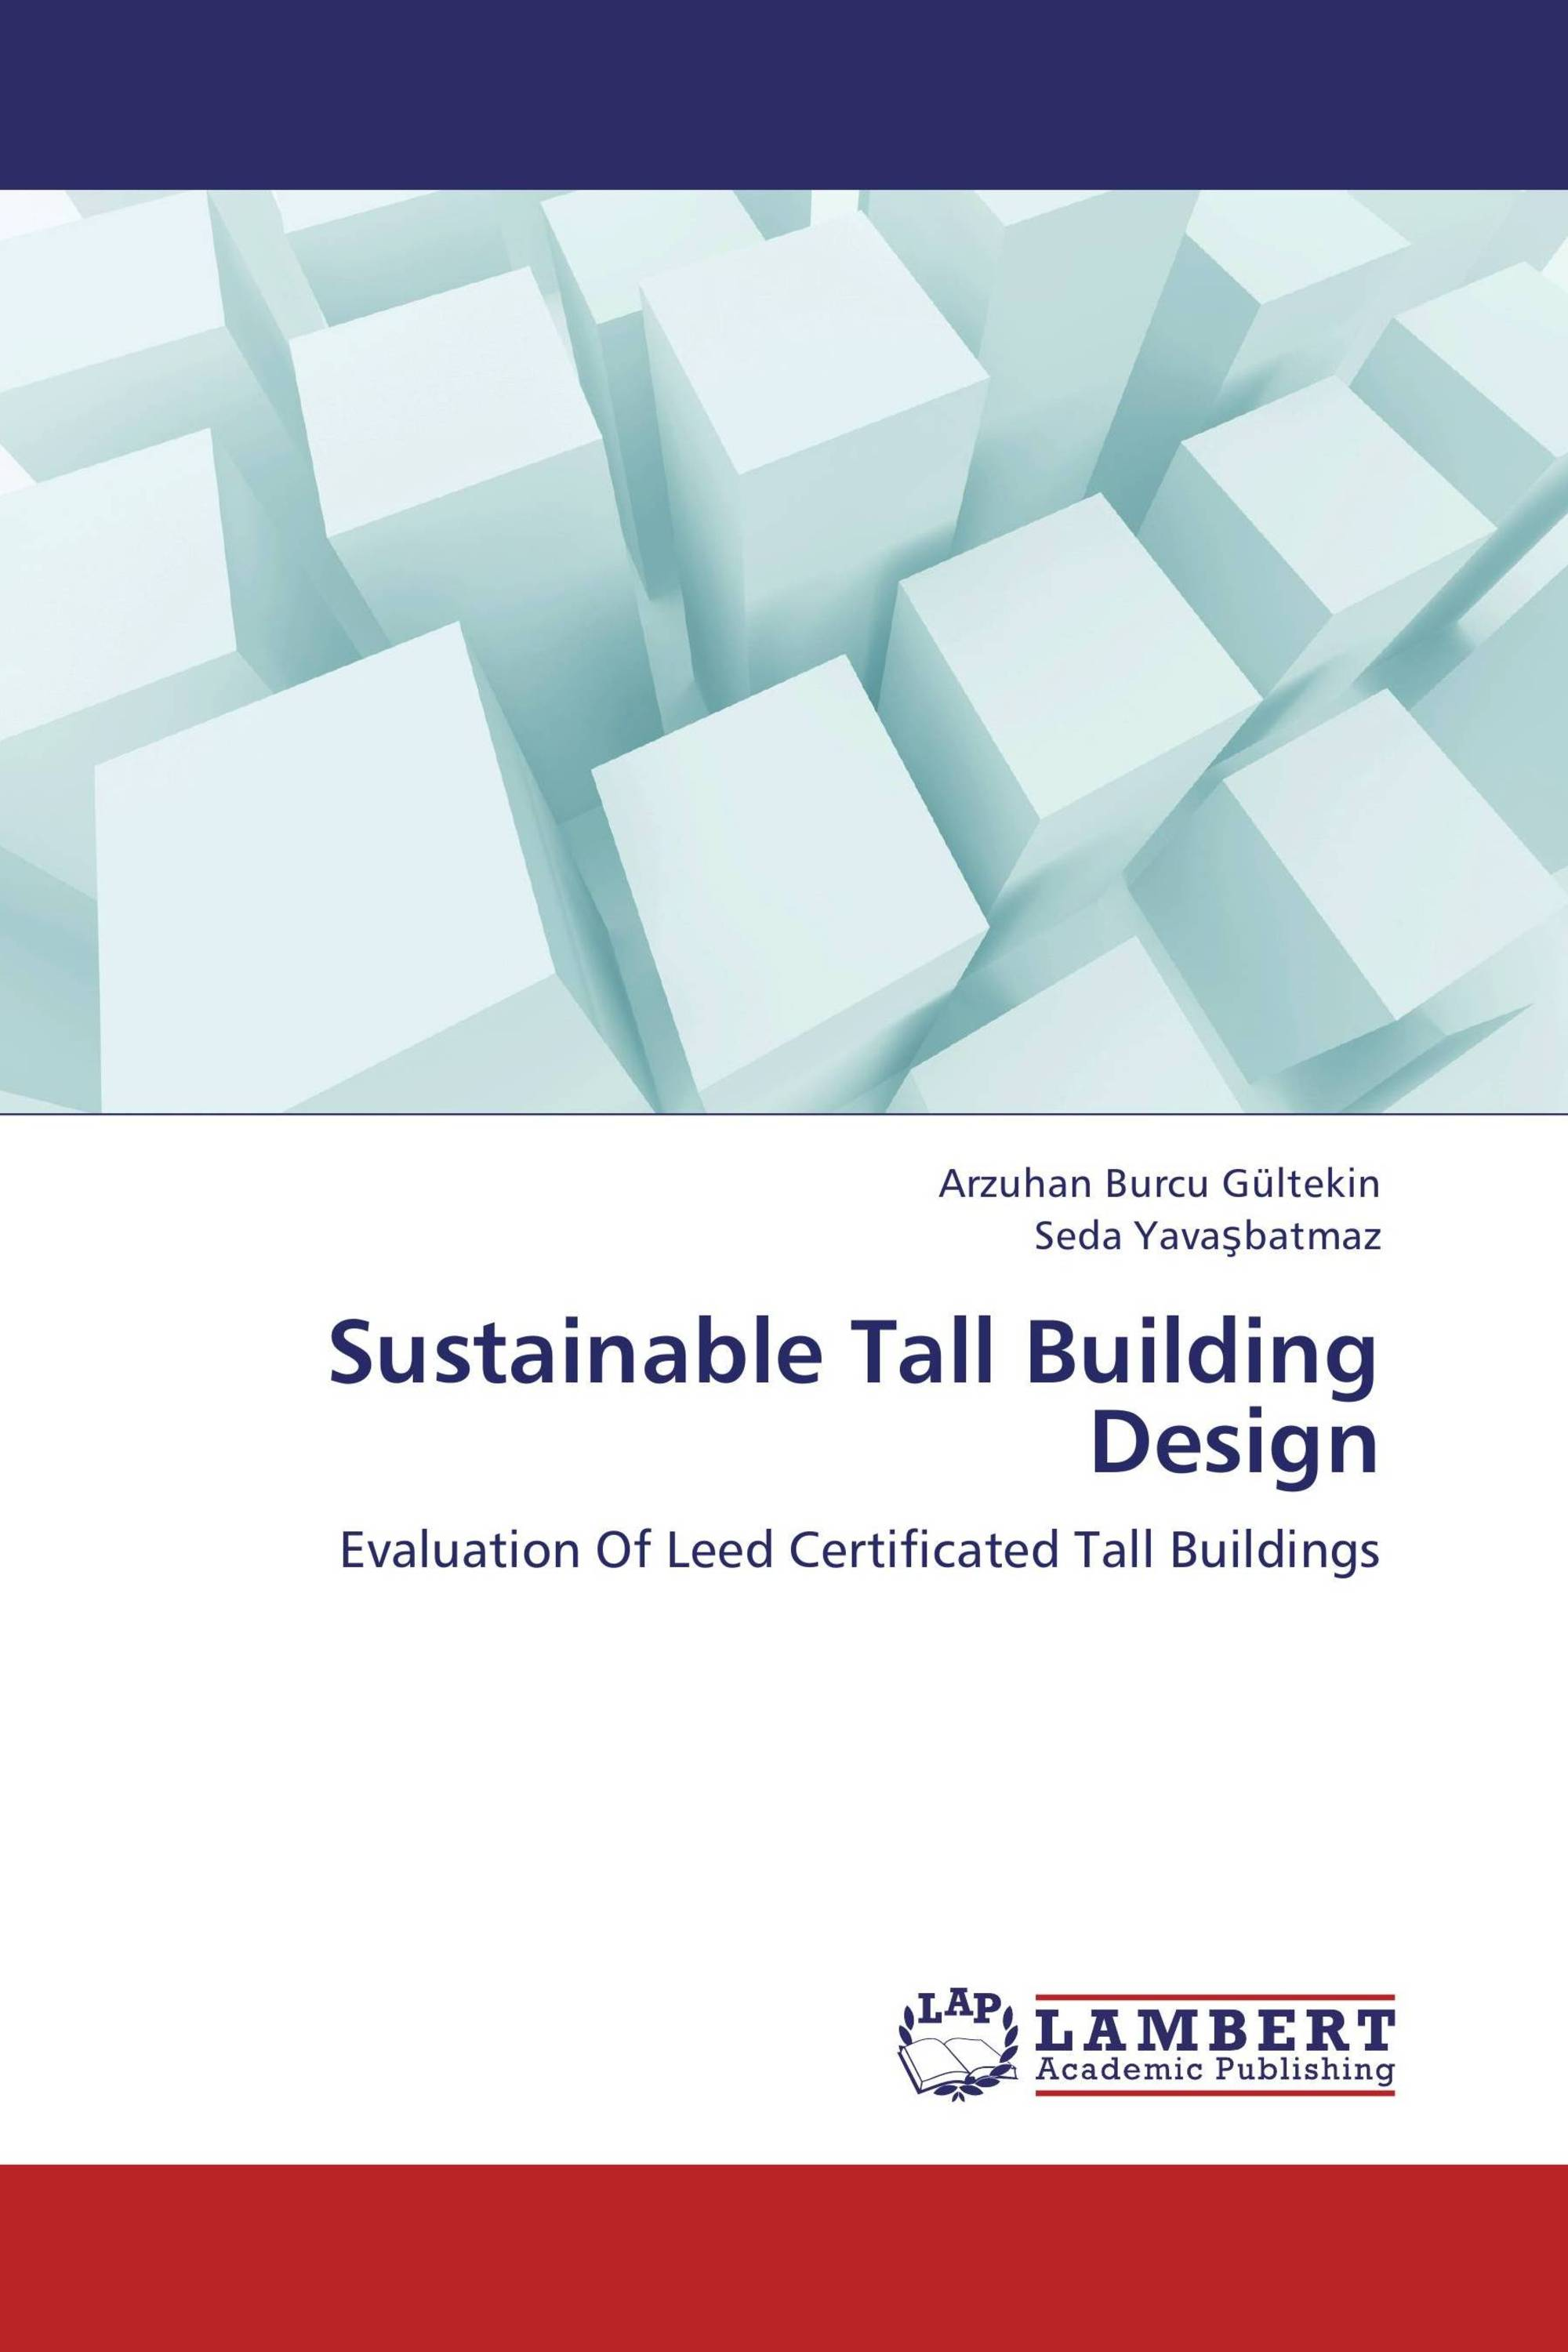 Sustainable Tall Building Design